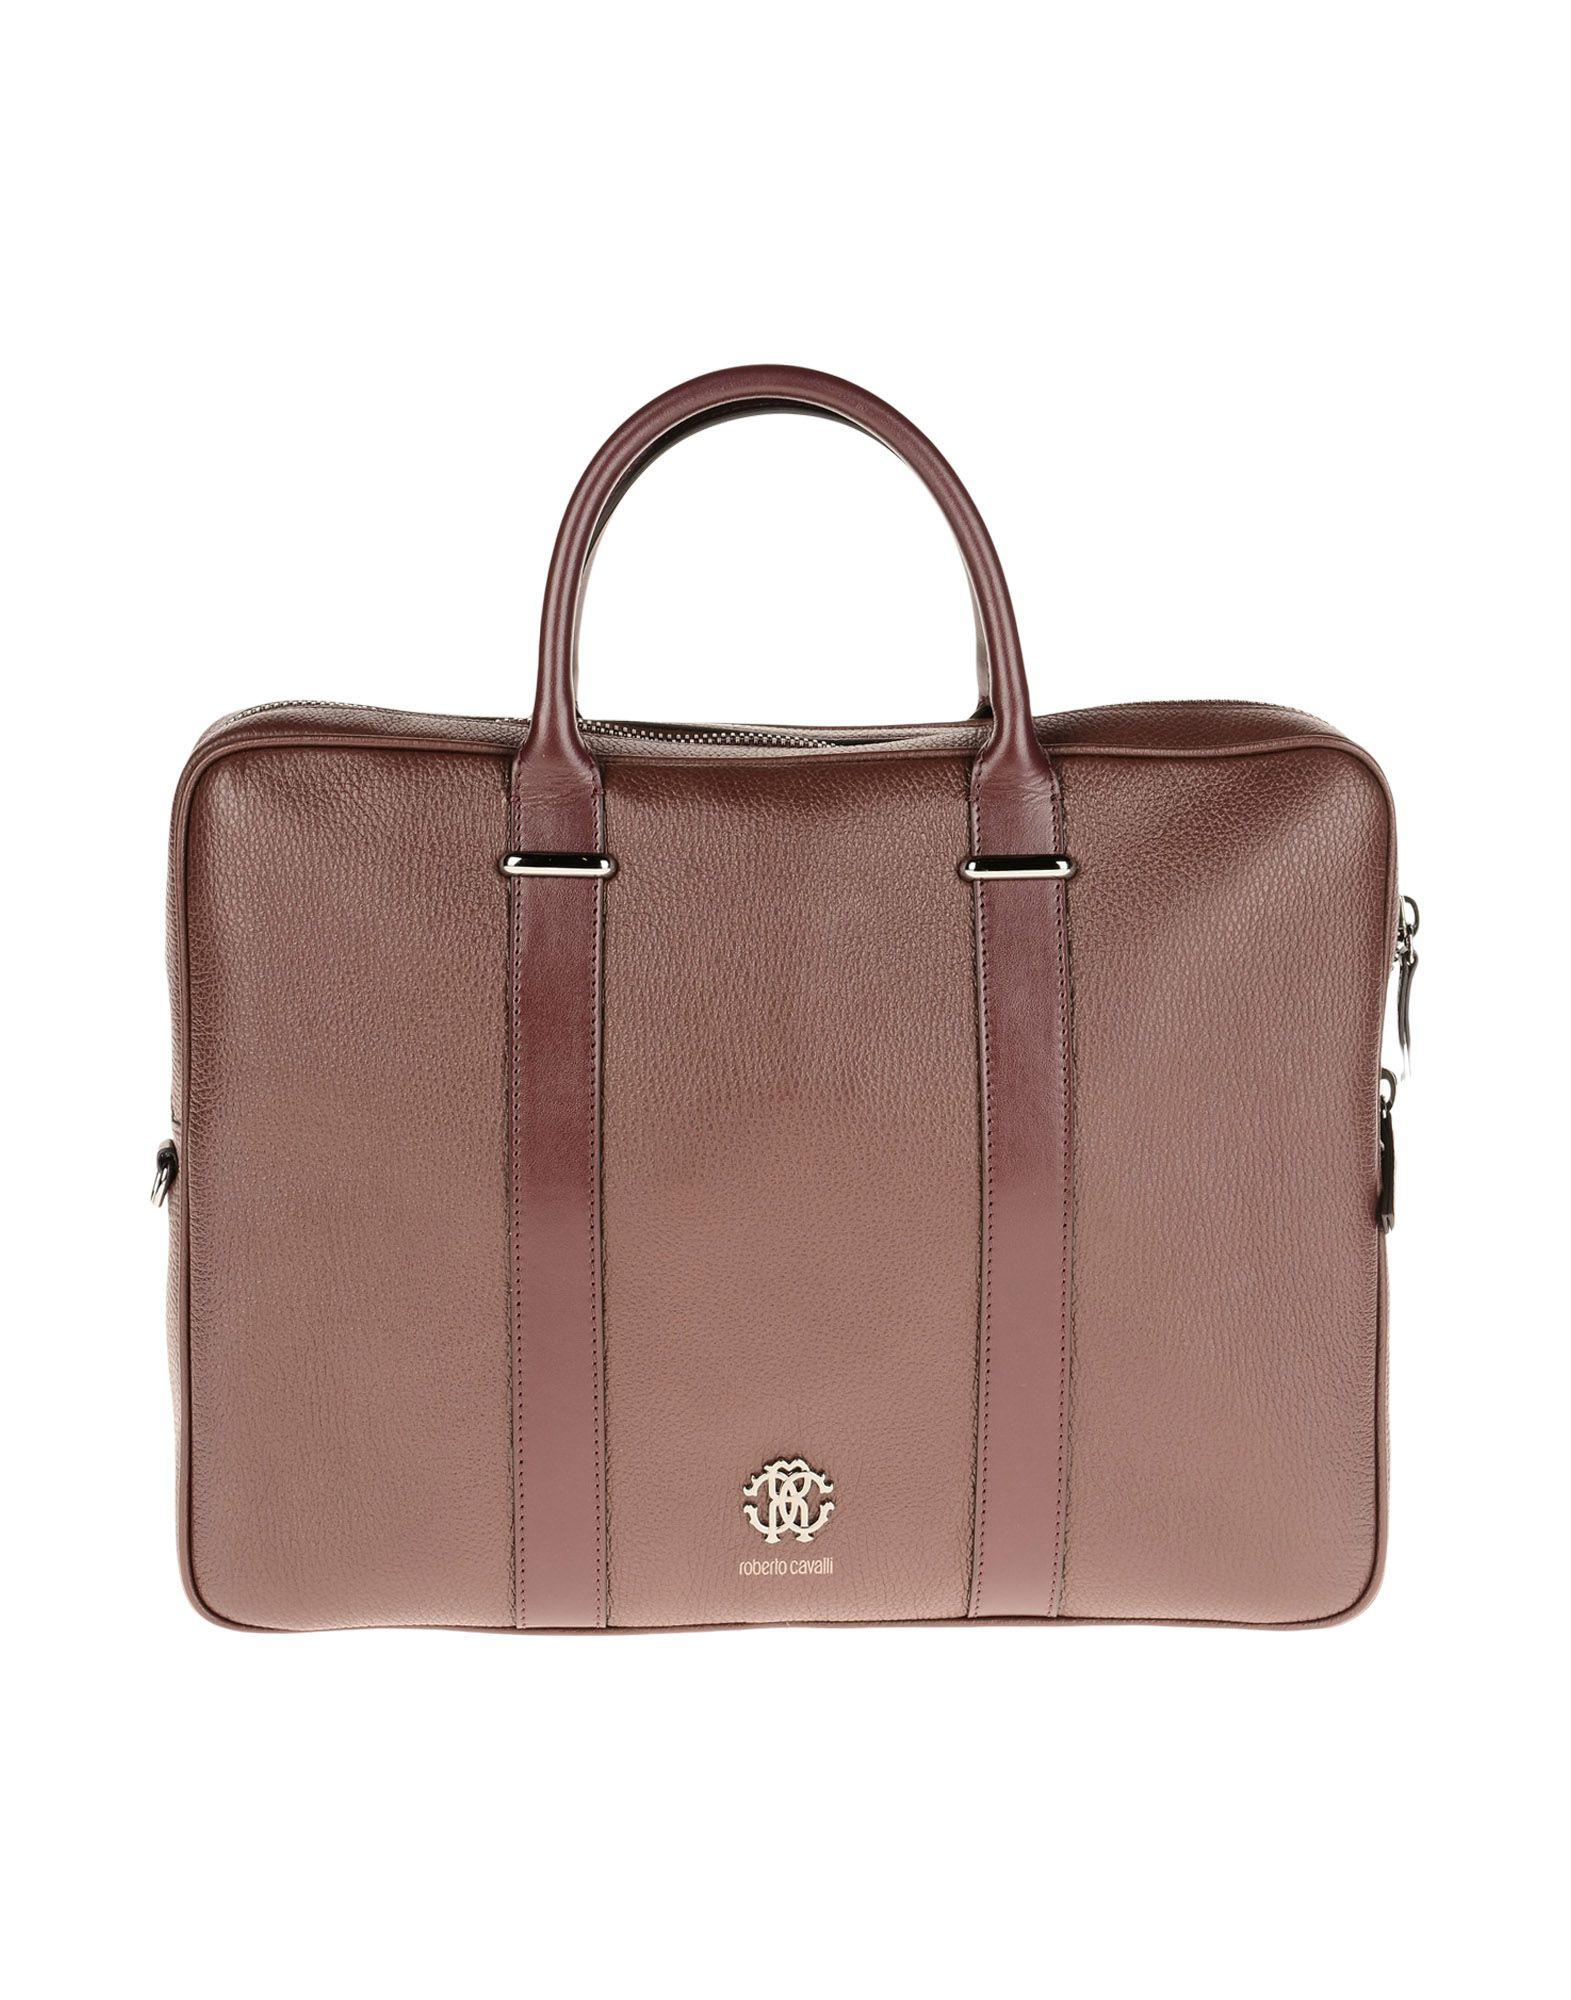 LUGGAGE - Beauty cases Roberto Cavalli Cheap Best Prices Cheap Sale With Mastercard Professional Cheap Price Cheap With Paypal Discount Largest Supplier HlCi3